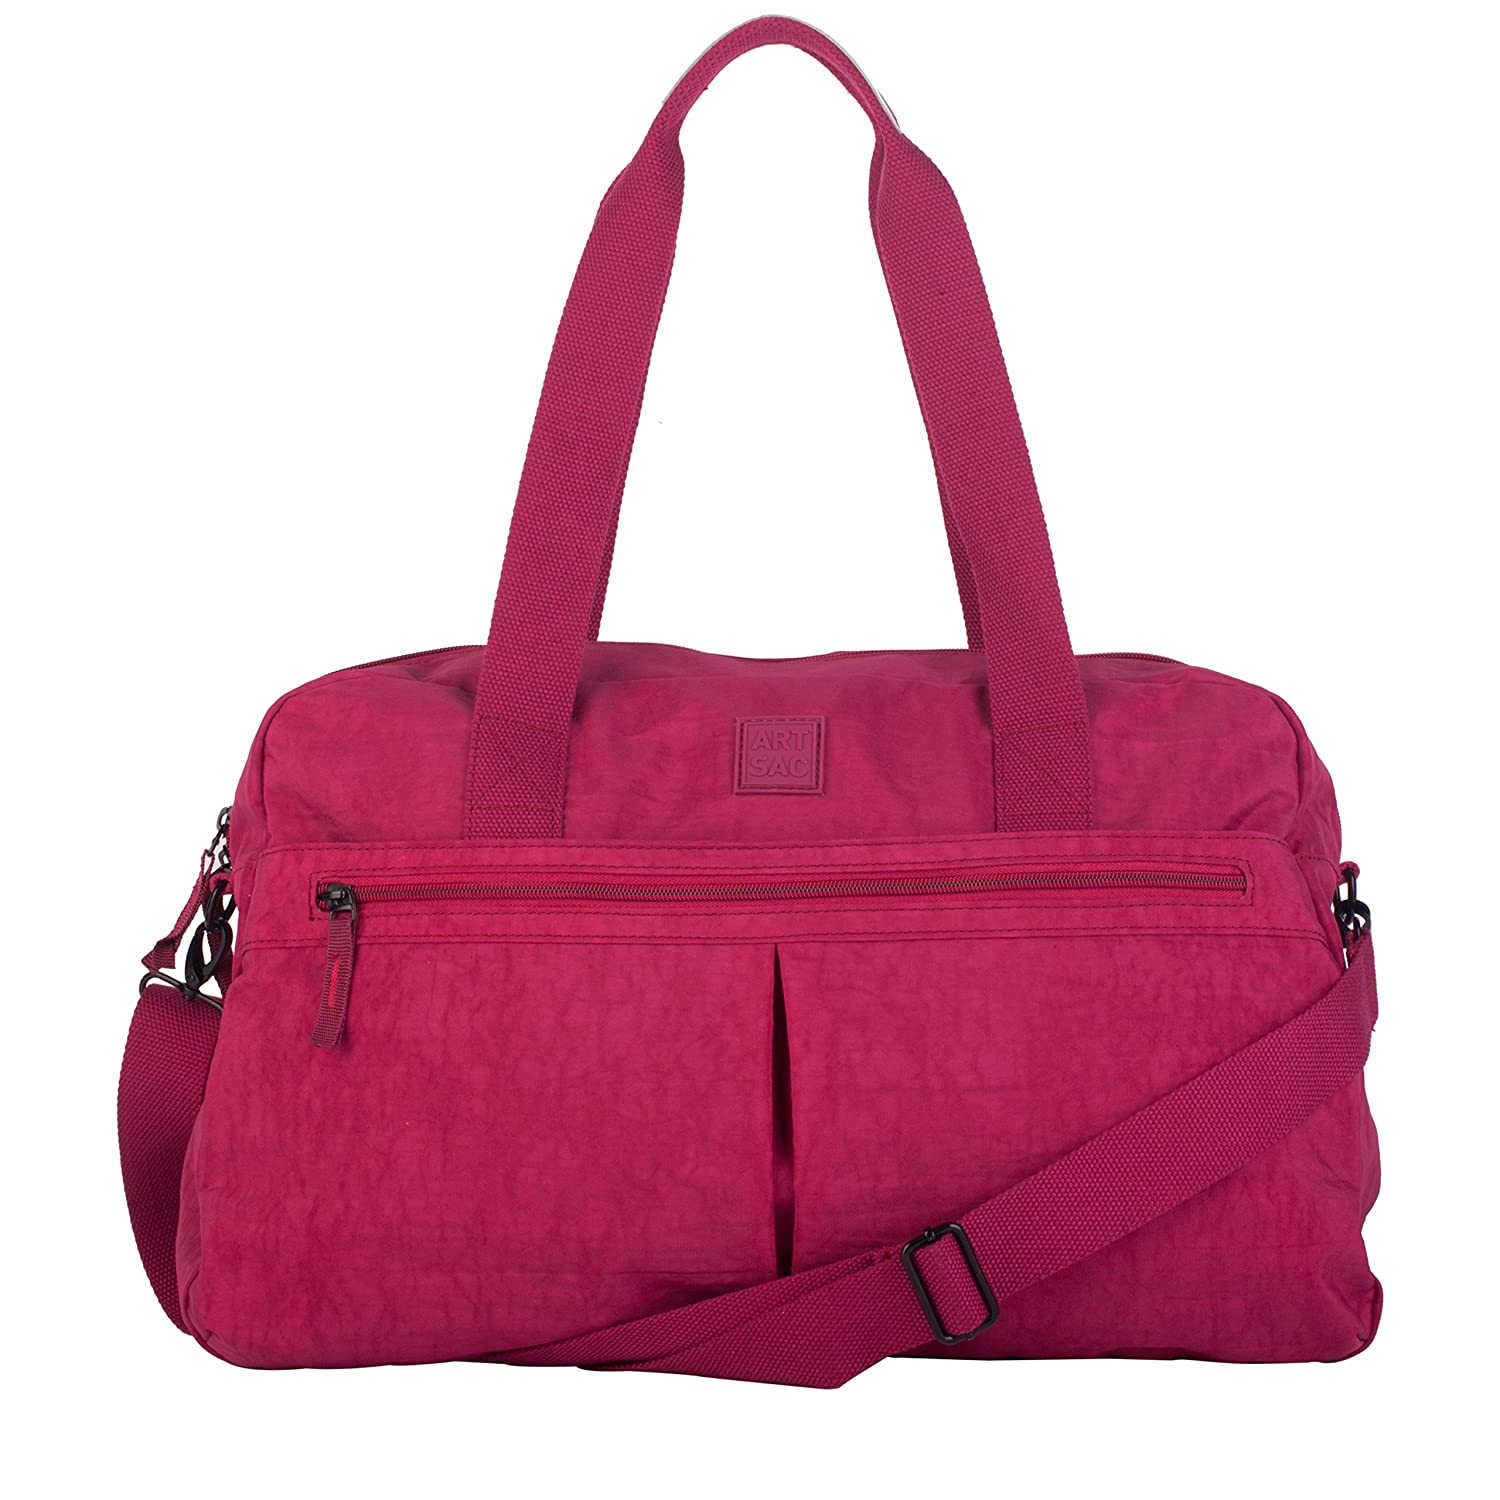 Plum Artsac Unisex-Adult Twin Strap Front Pocketed Holdall Top-Handle Bag Pink